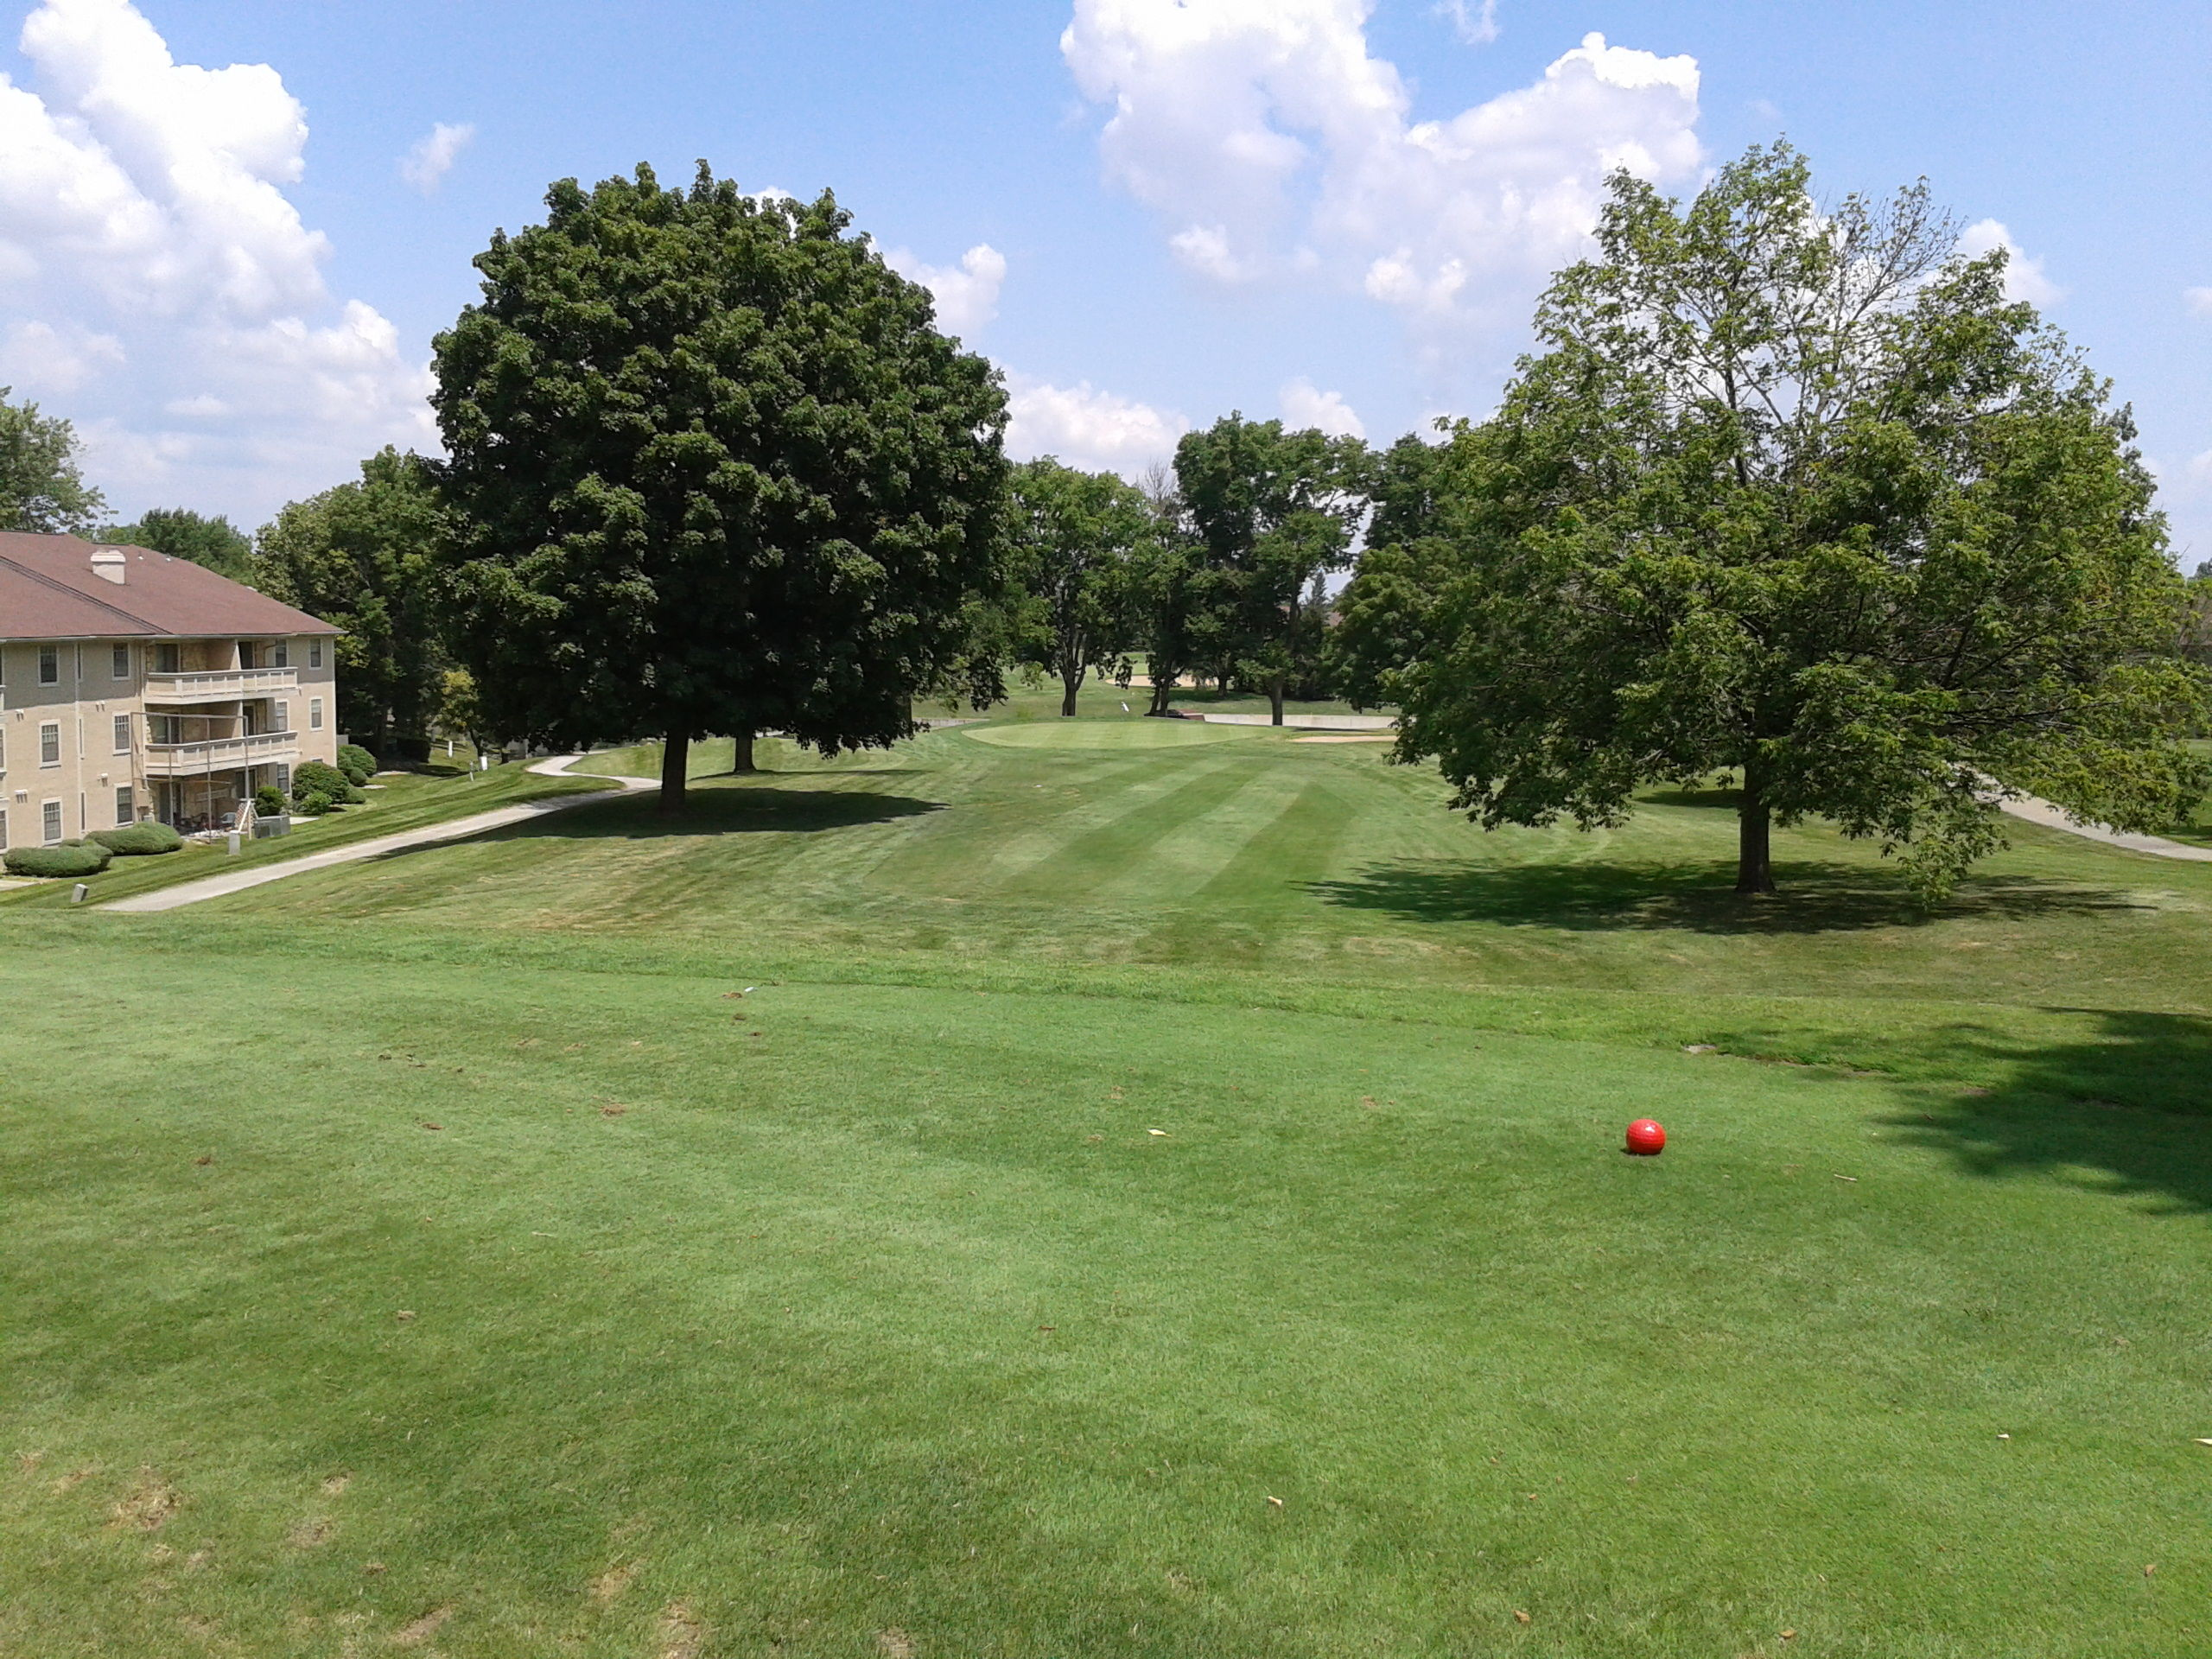 Canterbury green golf course cover picture